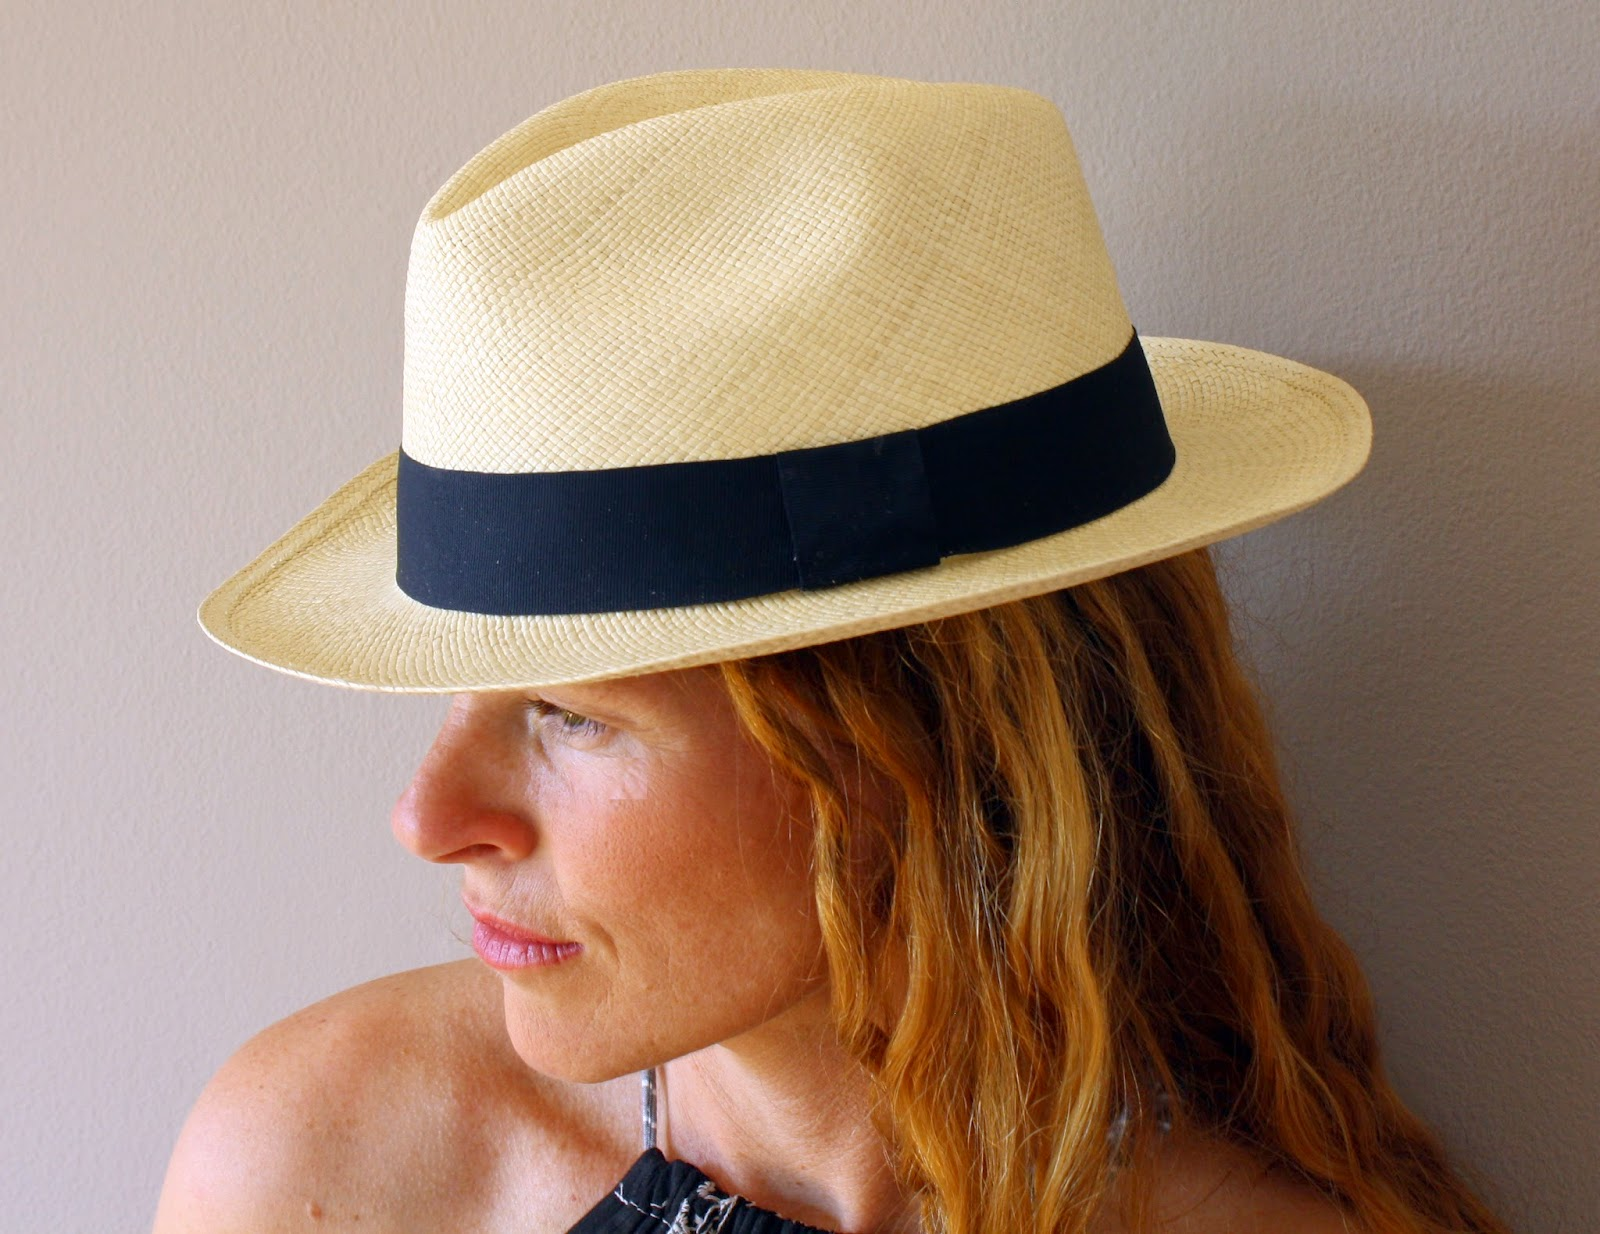 tiny chic mom, ses petites mains for women, women's accessories, women's hats, panama hats, fedora hat for women